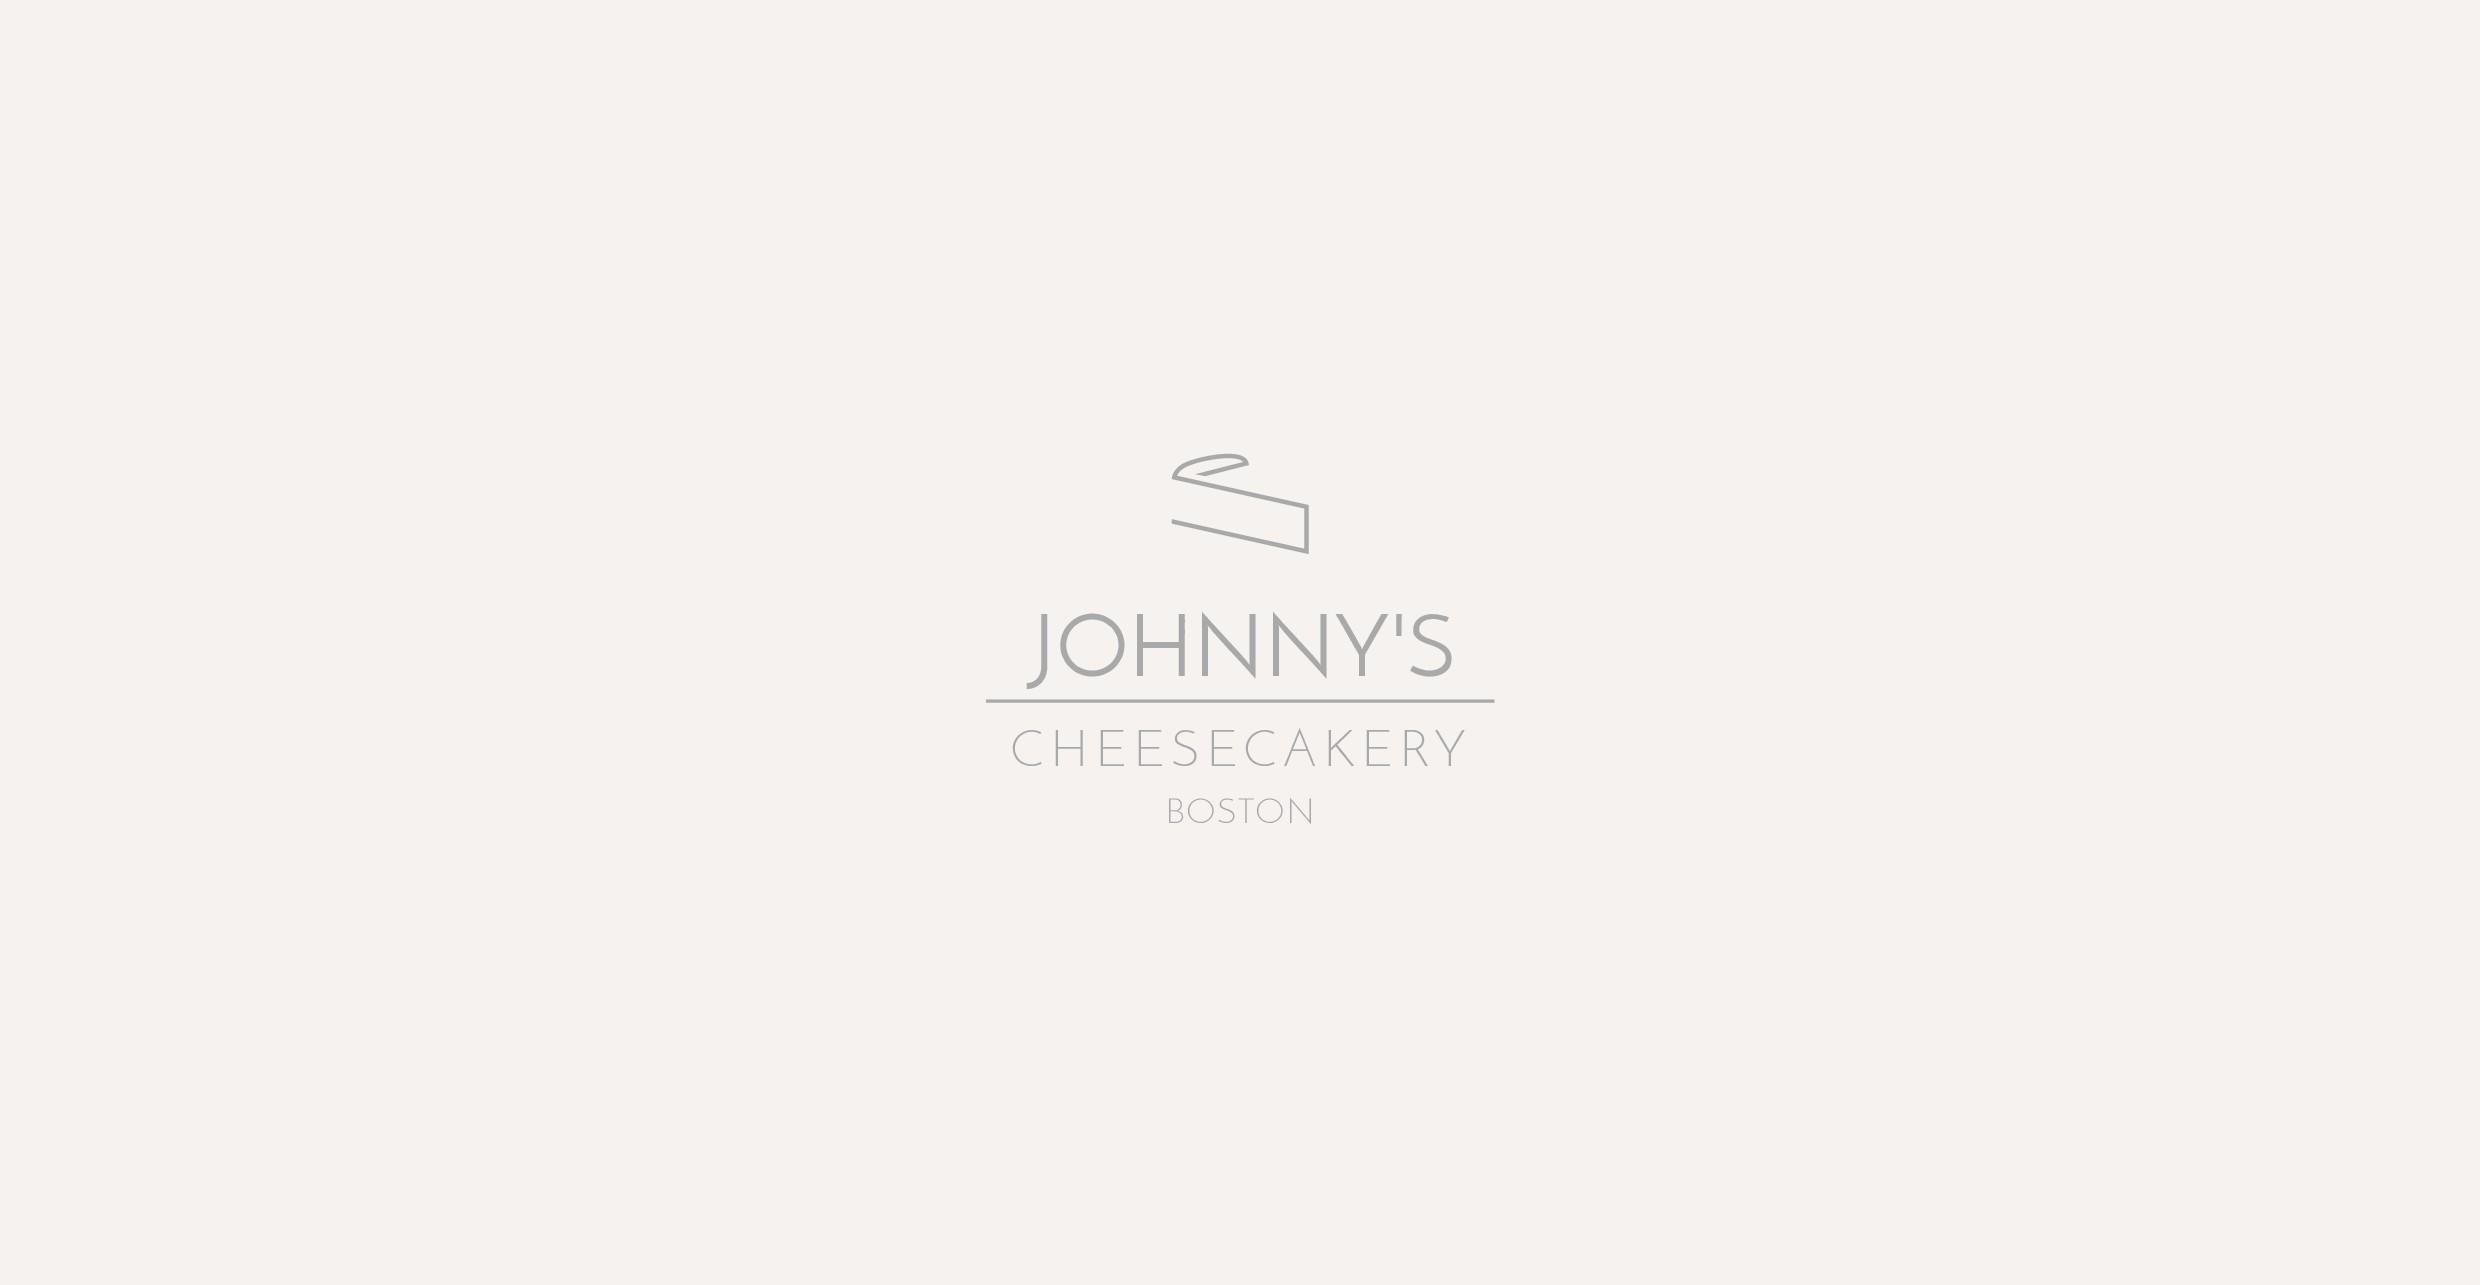 Create a branded logo for our Cheesecake Company